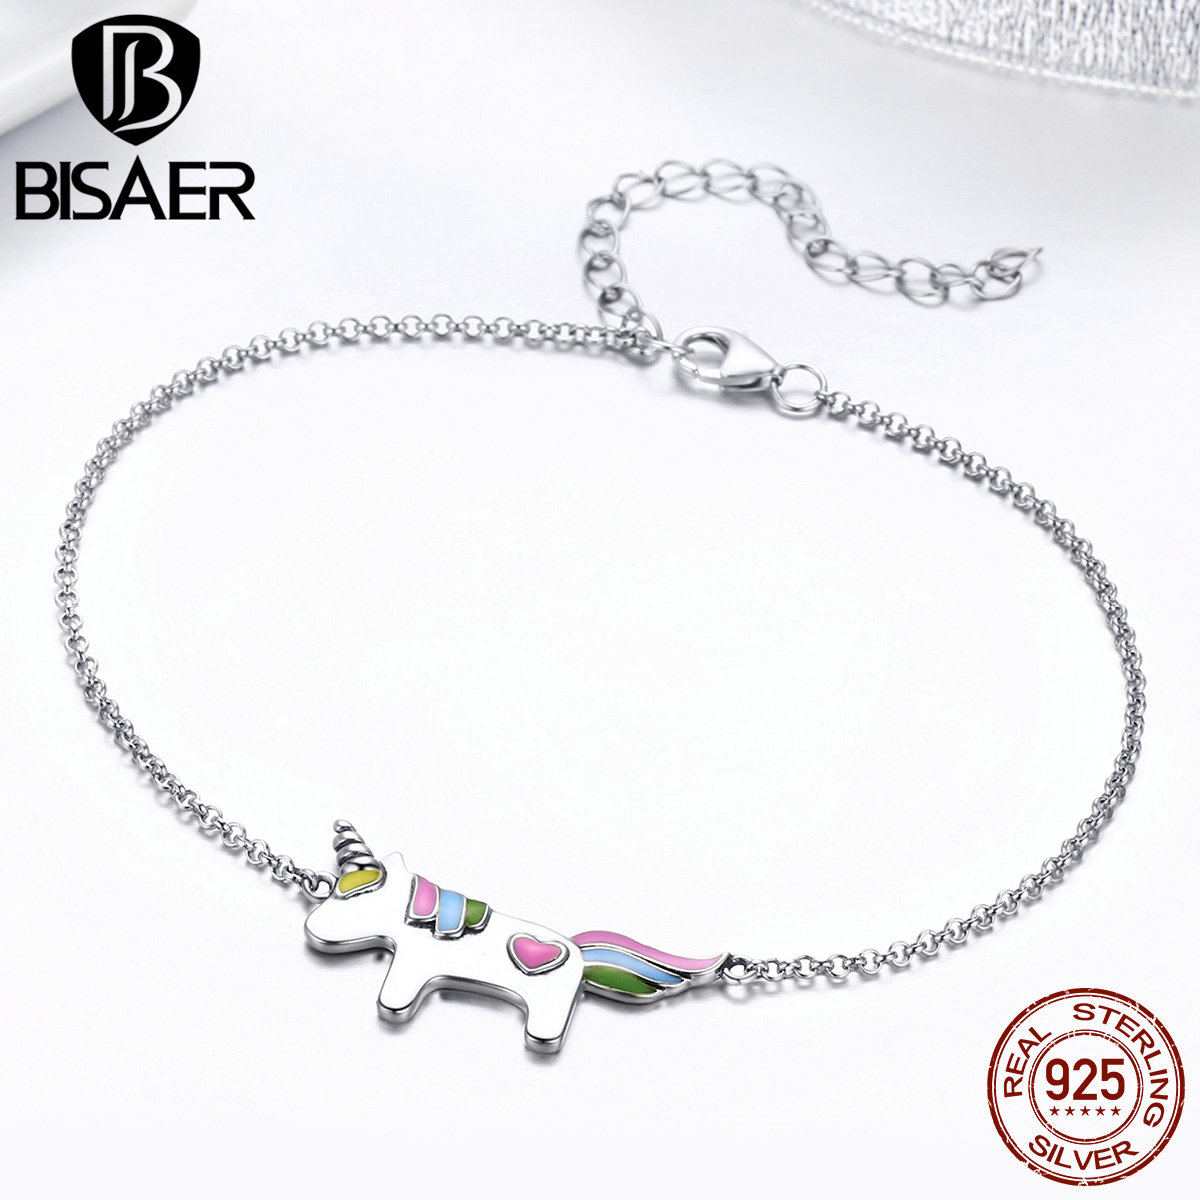 BISAER Authentic 925 Sterling Silver Enamel Stick Figure Licorne Animal Chain Link Bracelet for Women Fashion Jewelry GXB077